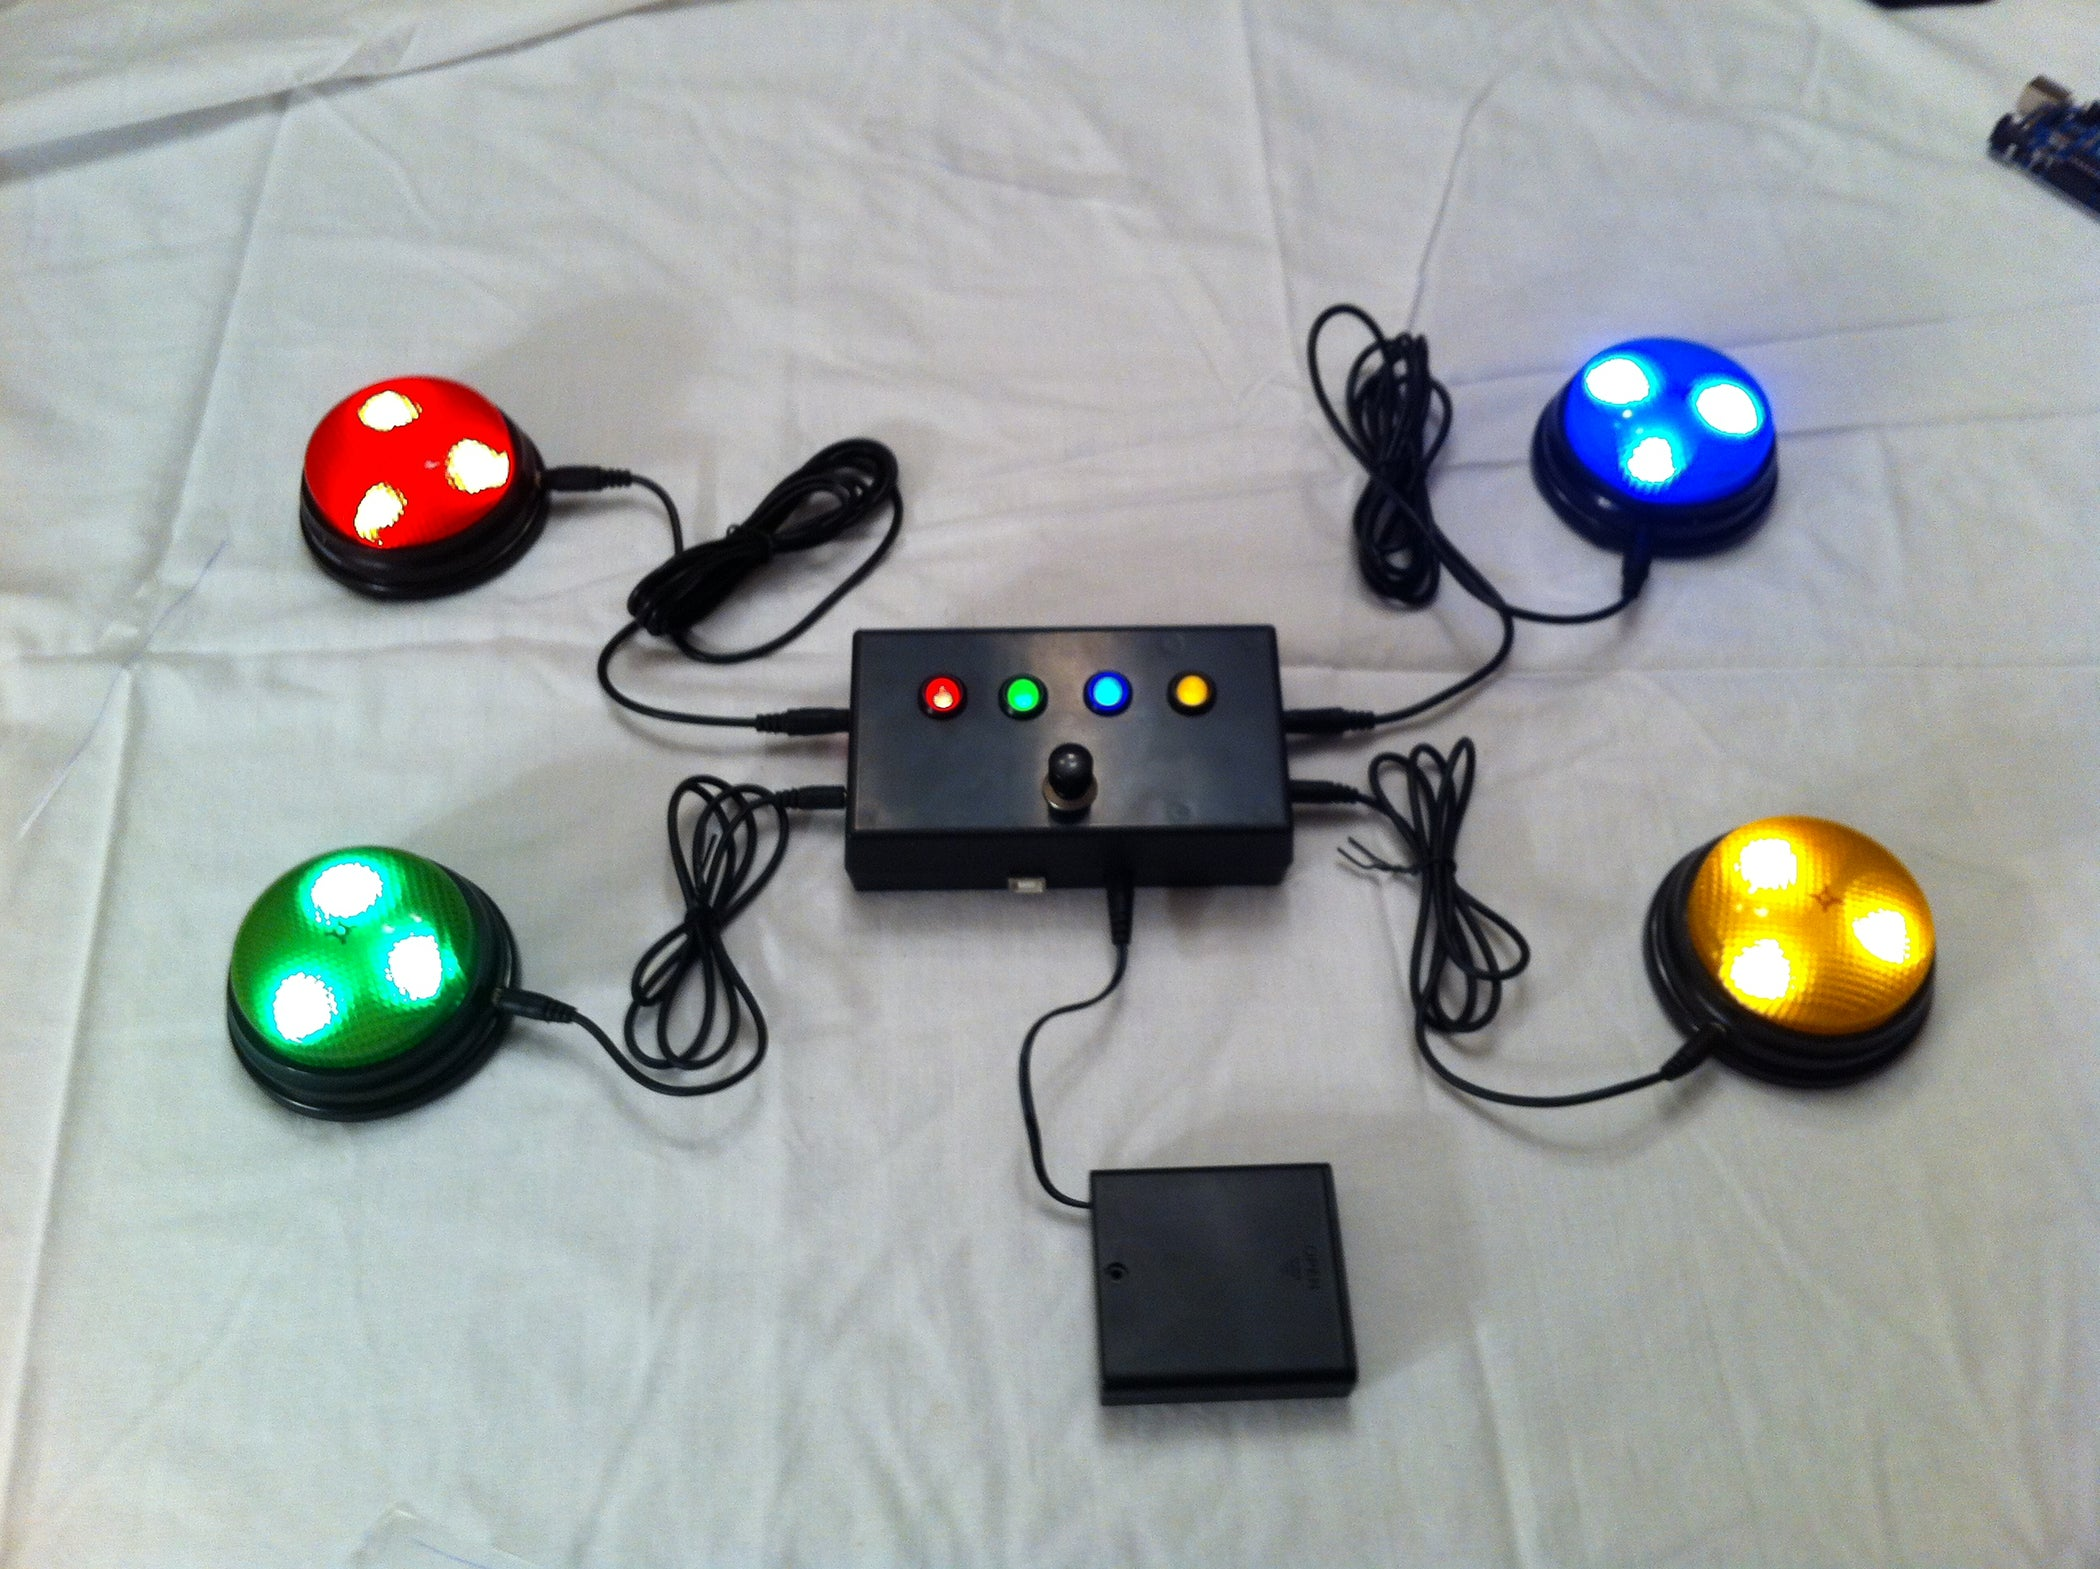 Quiz Game Controller Using Lights And Sounds Buzzers Arduino Diagram To Be Used With Motadacruz39s Music Led Light Box Instructable 5 Steps Pictures